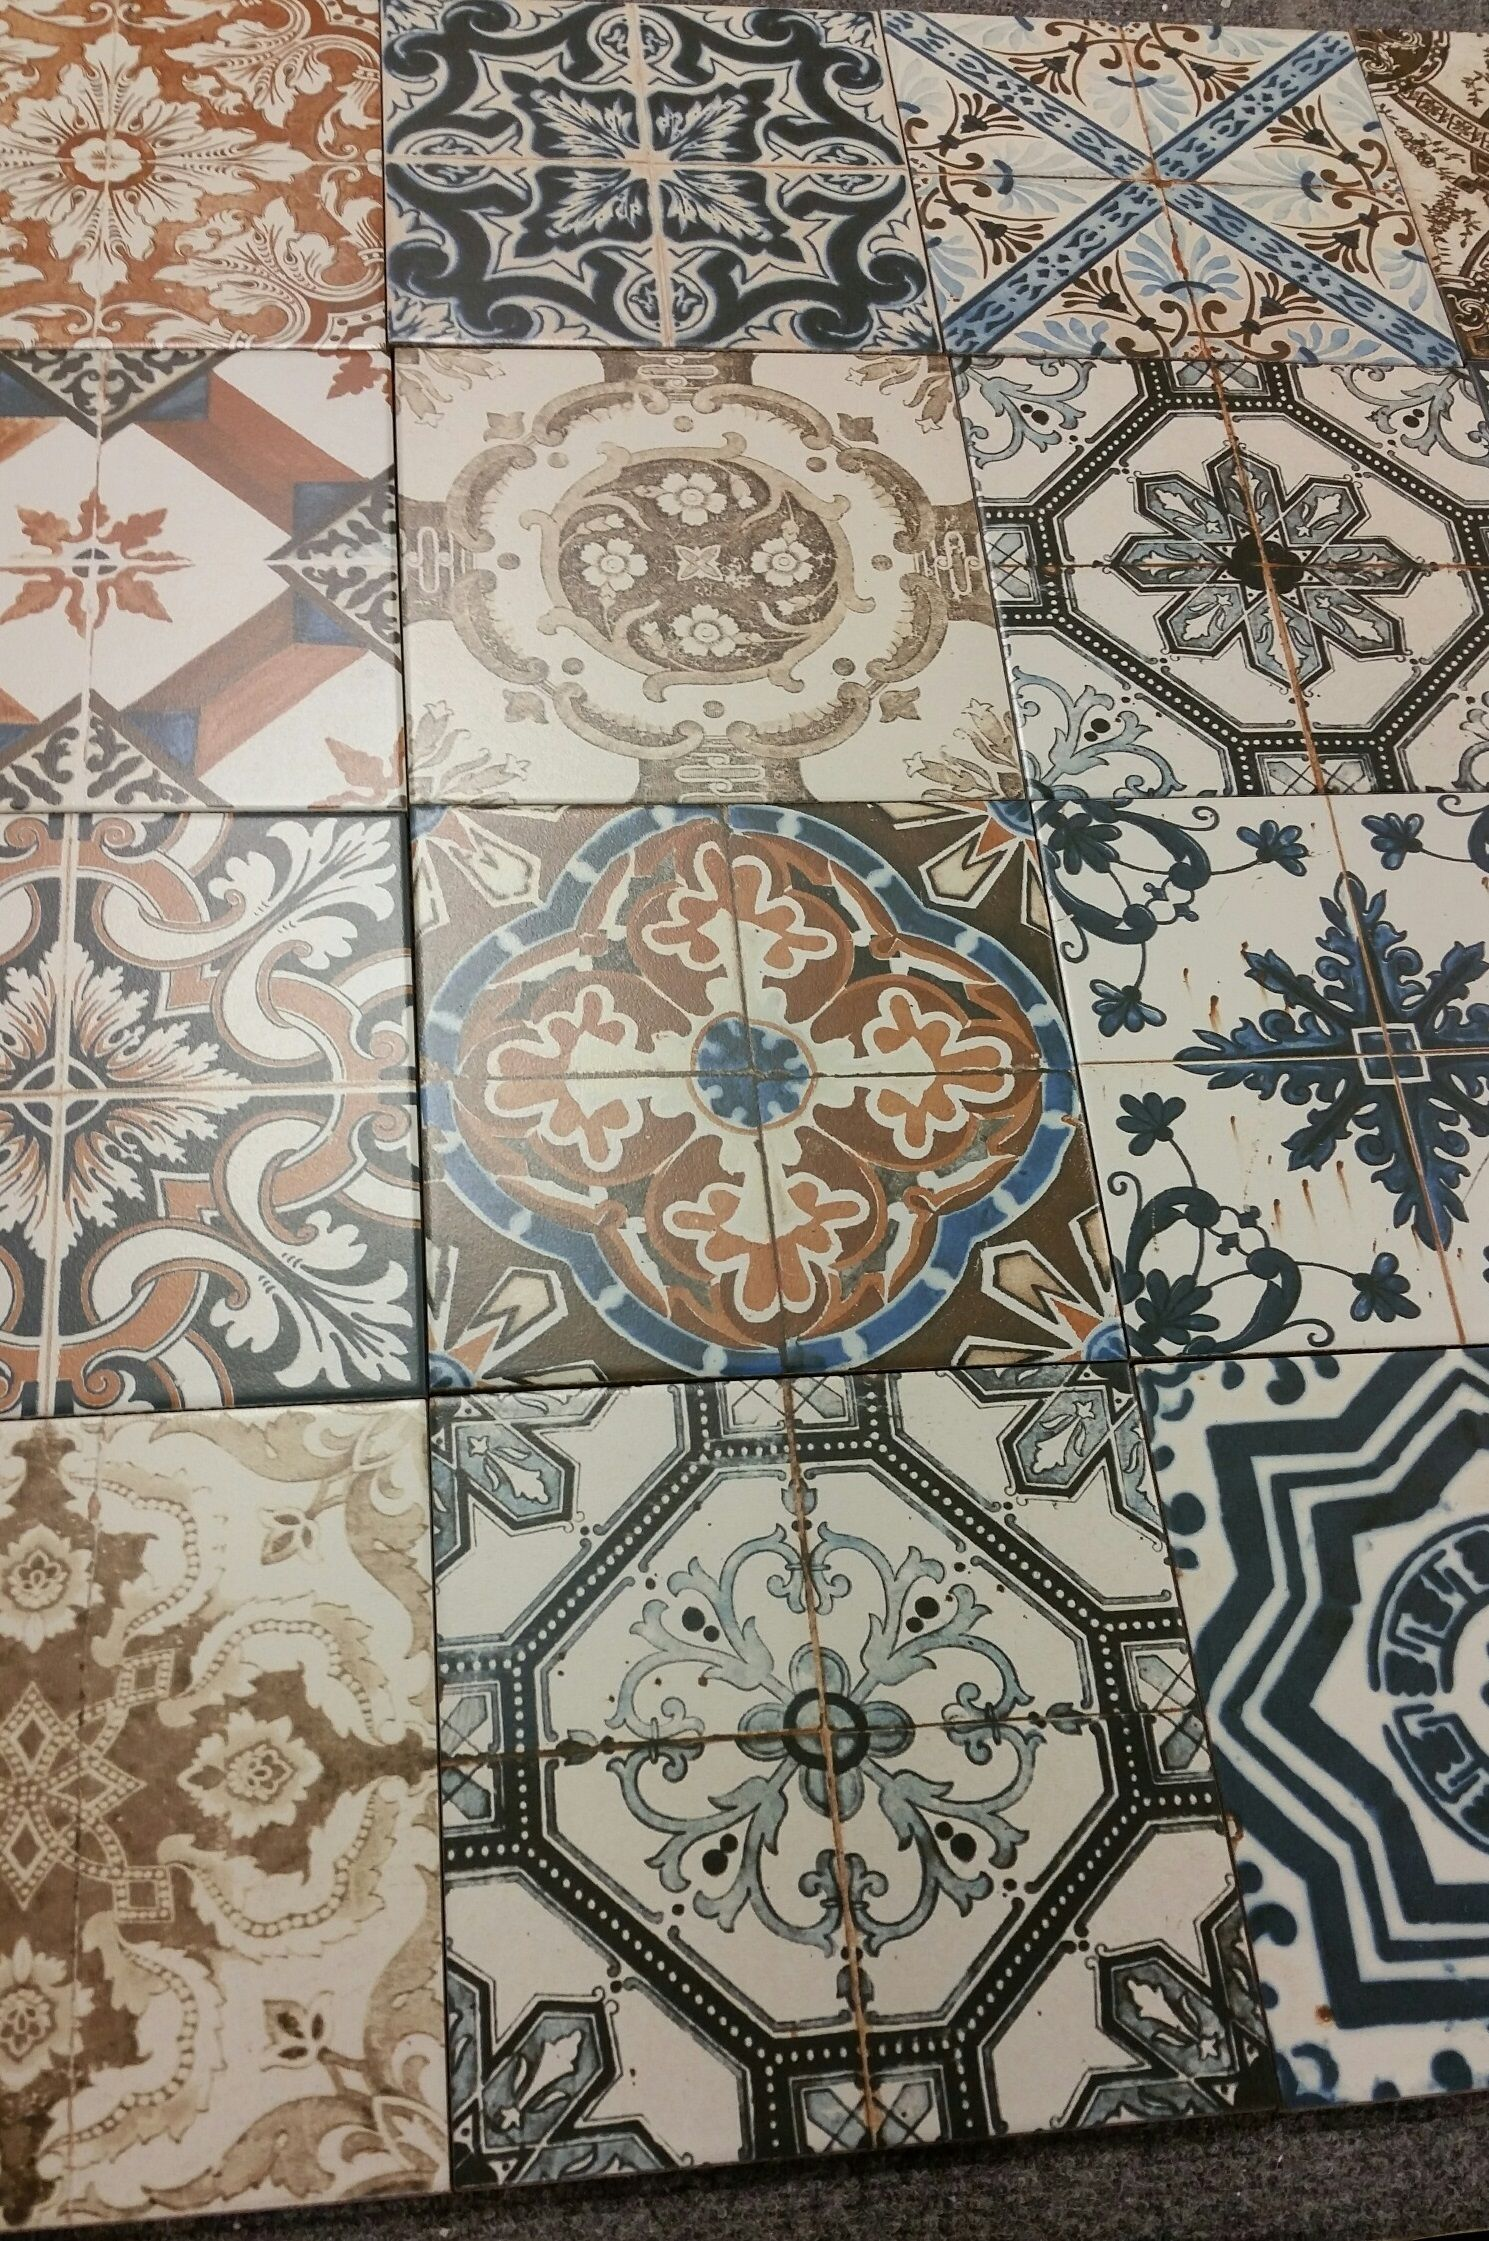 Decorative Picture Tiles Glamorous Sneak Peek At Our Marrakesh Decorative Tile Series In Glossy Decorating Inspiration